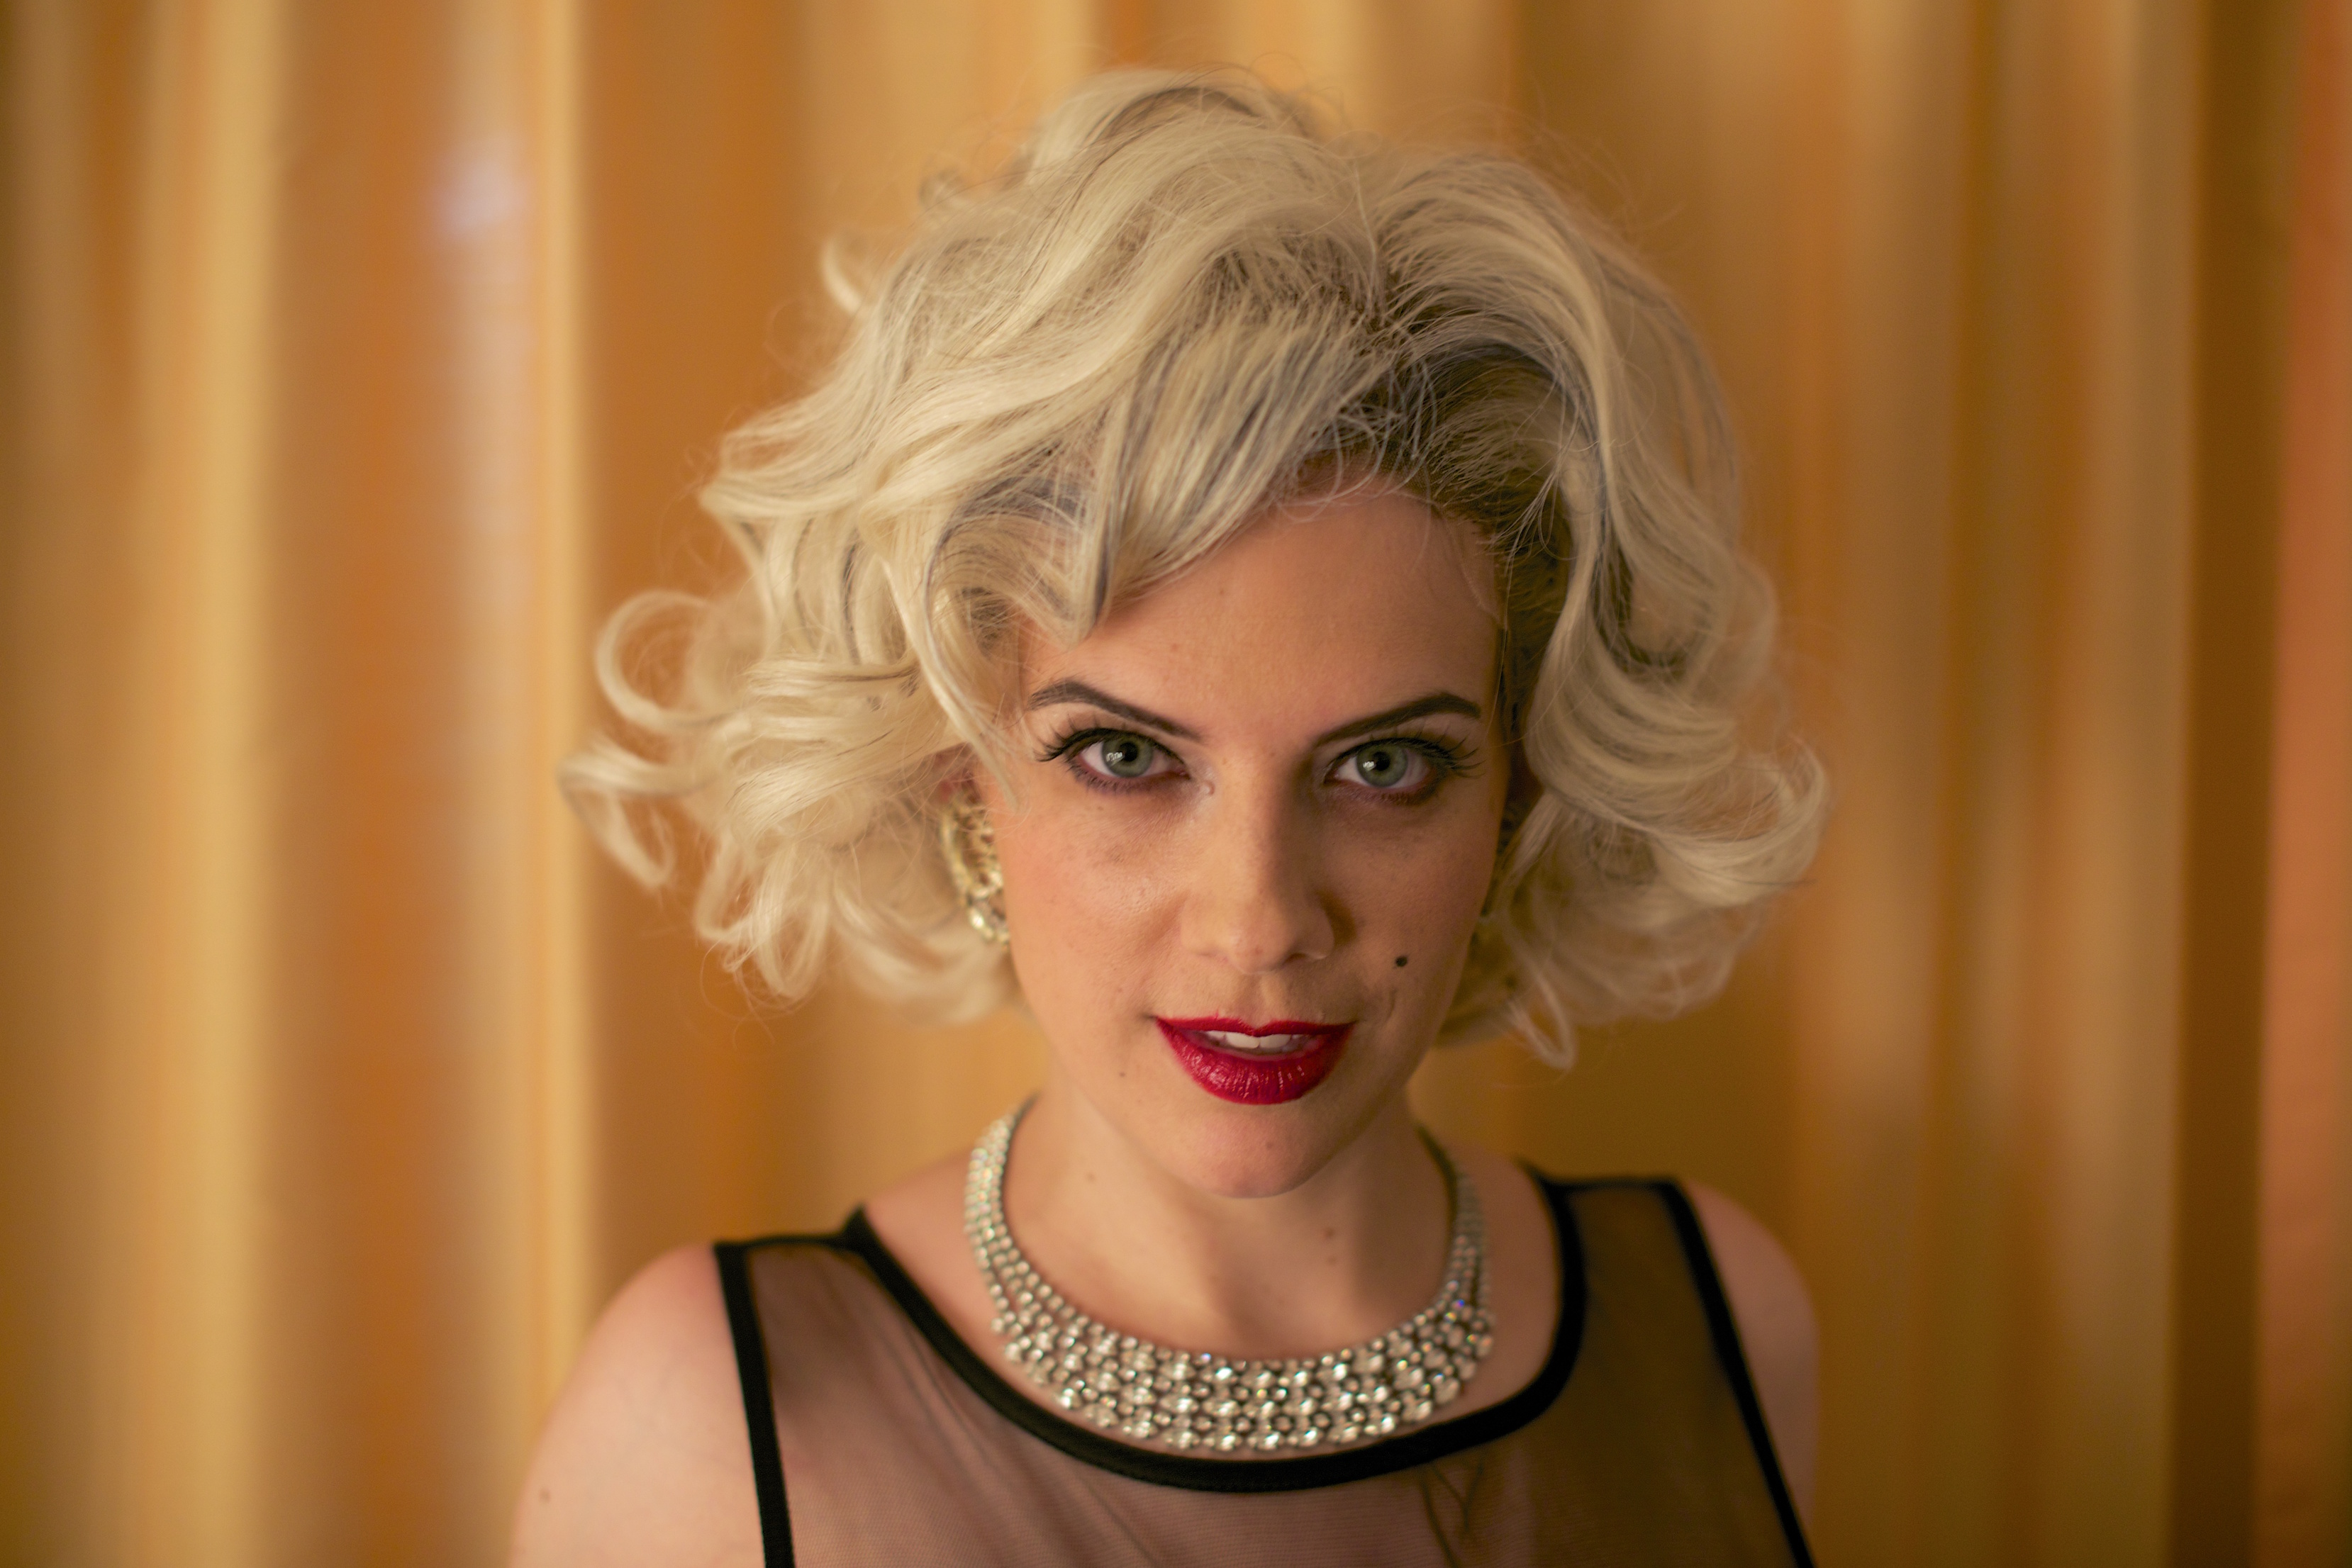 Portrait style photo of Jennifer Porto dressed as Marilyn Monroe.